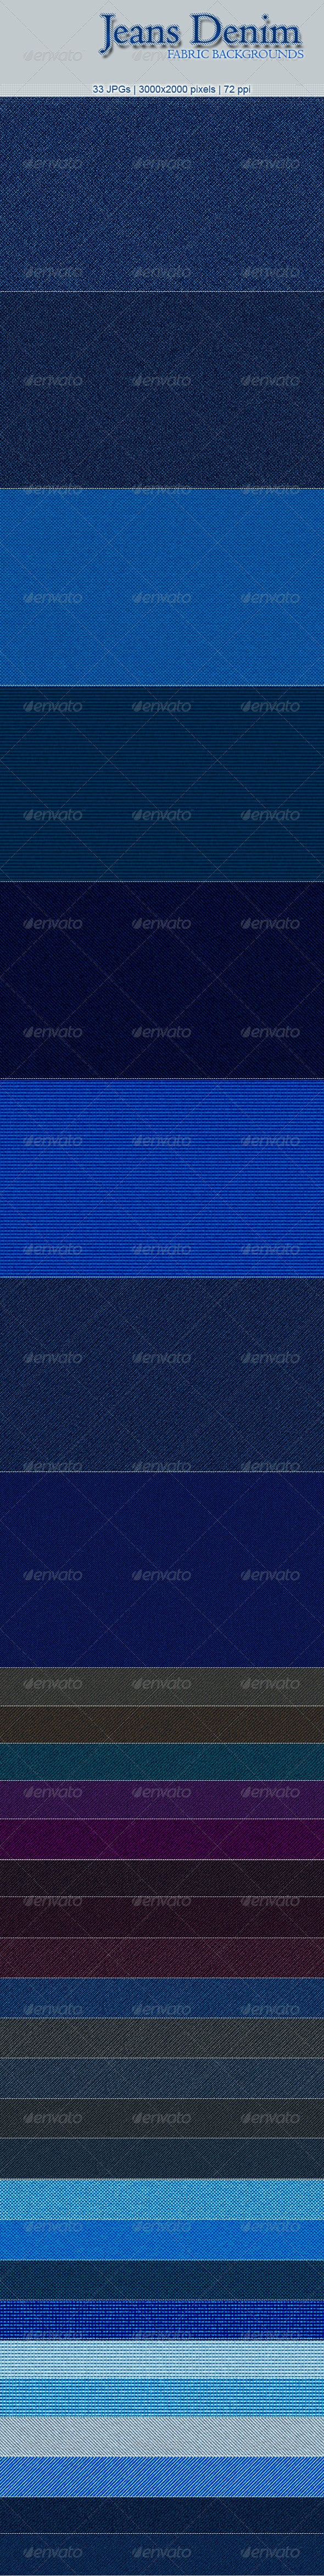 33 Jeans Denim Fabric Backgrounds - Miscellaneous Backgrounds